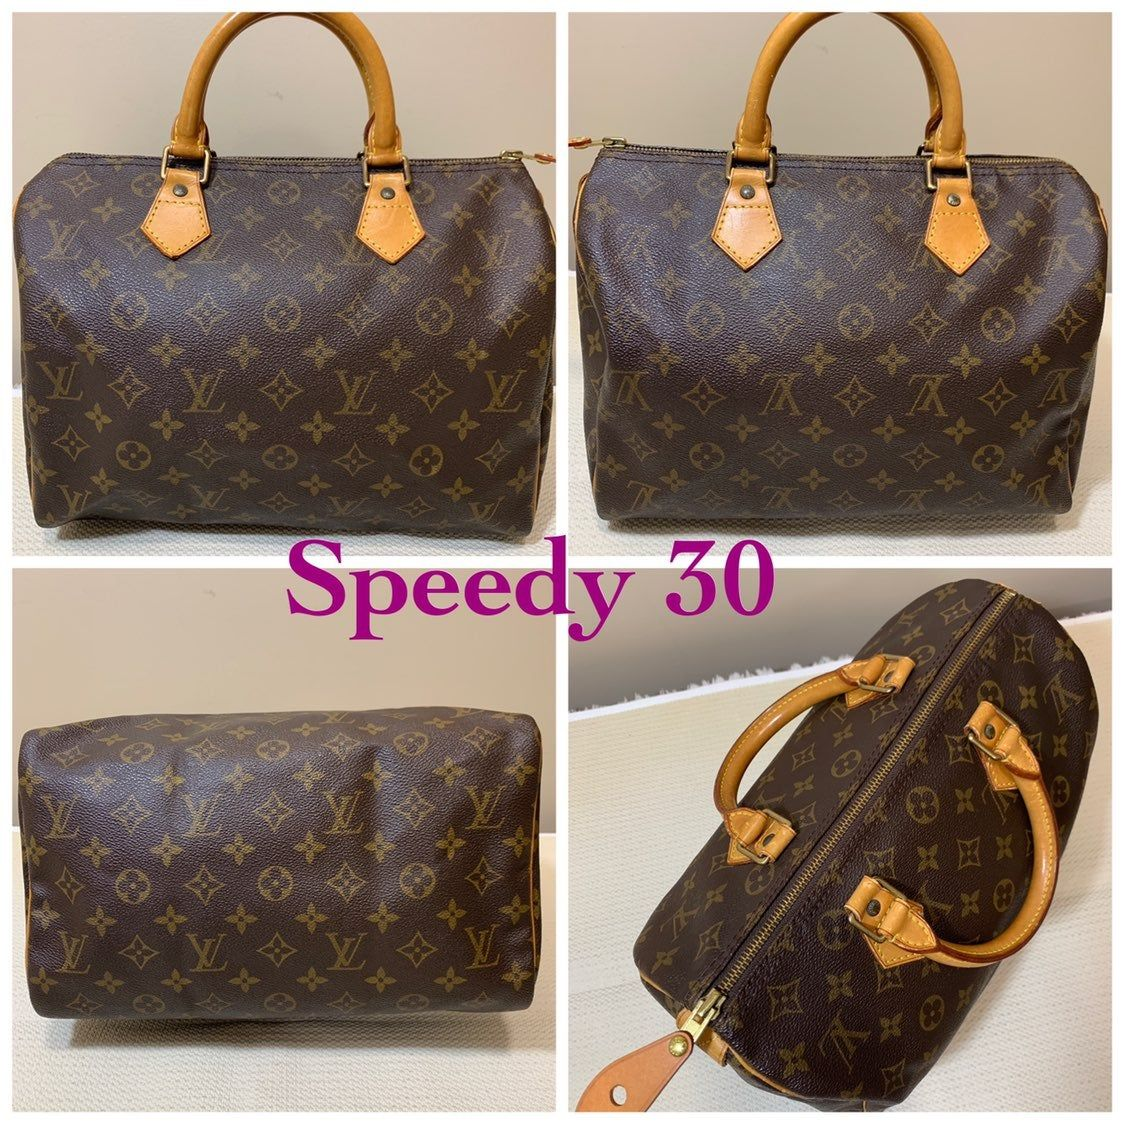 Pre Owned Authentic Louis Vuitton Speedy 30 Hand Bag Only In Good Condition But Has Few Rubs And Louis Vuitton Speedy 30 Louis Vuitton Satchel Louis Vuitton